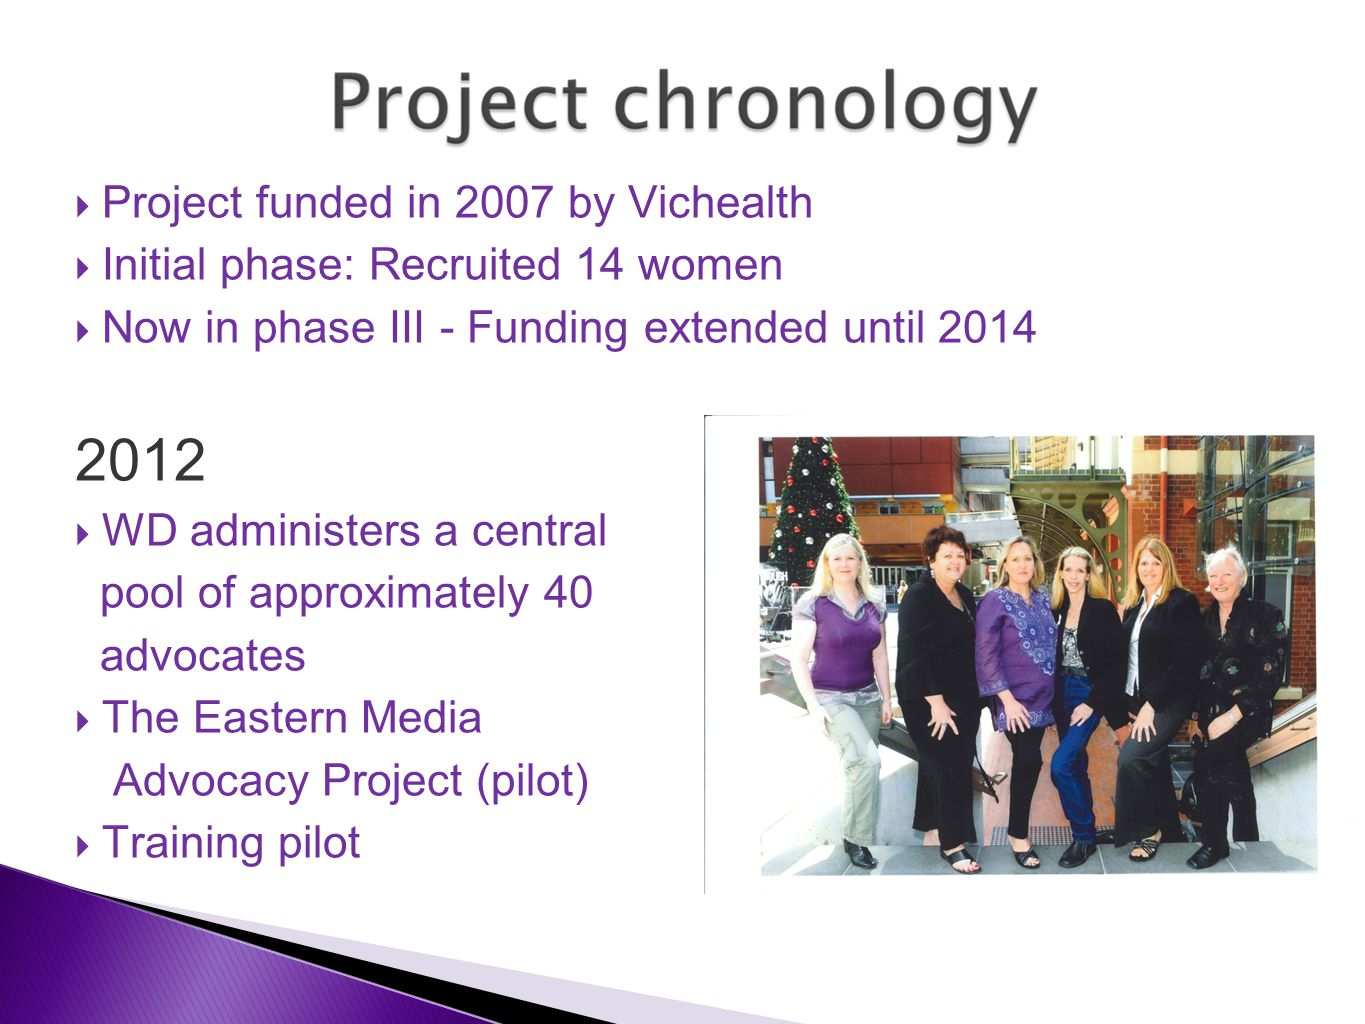  Project funded in 2007 by Vichealth  Initial phase: Recruited 14 women  Now in phase III - Funding extended until 2014 2012  WD administers a central pool of approximately 40 advocates  The Eastern Media Advocacy Project (pilot)  Training pilot